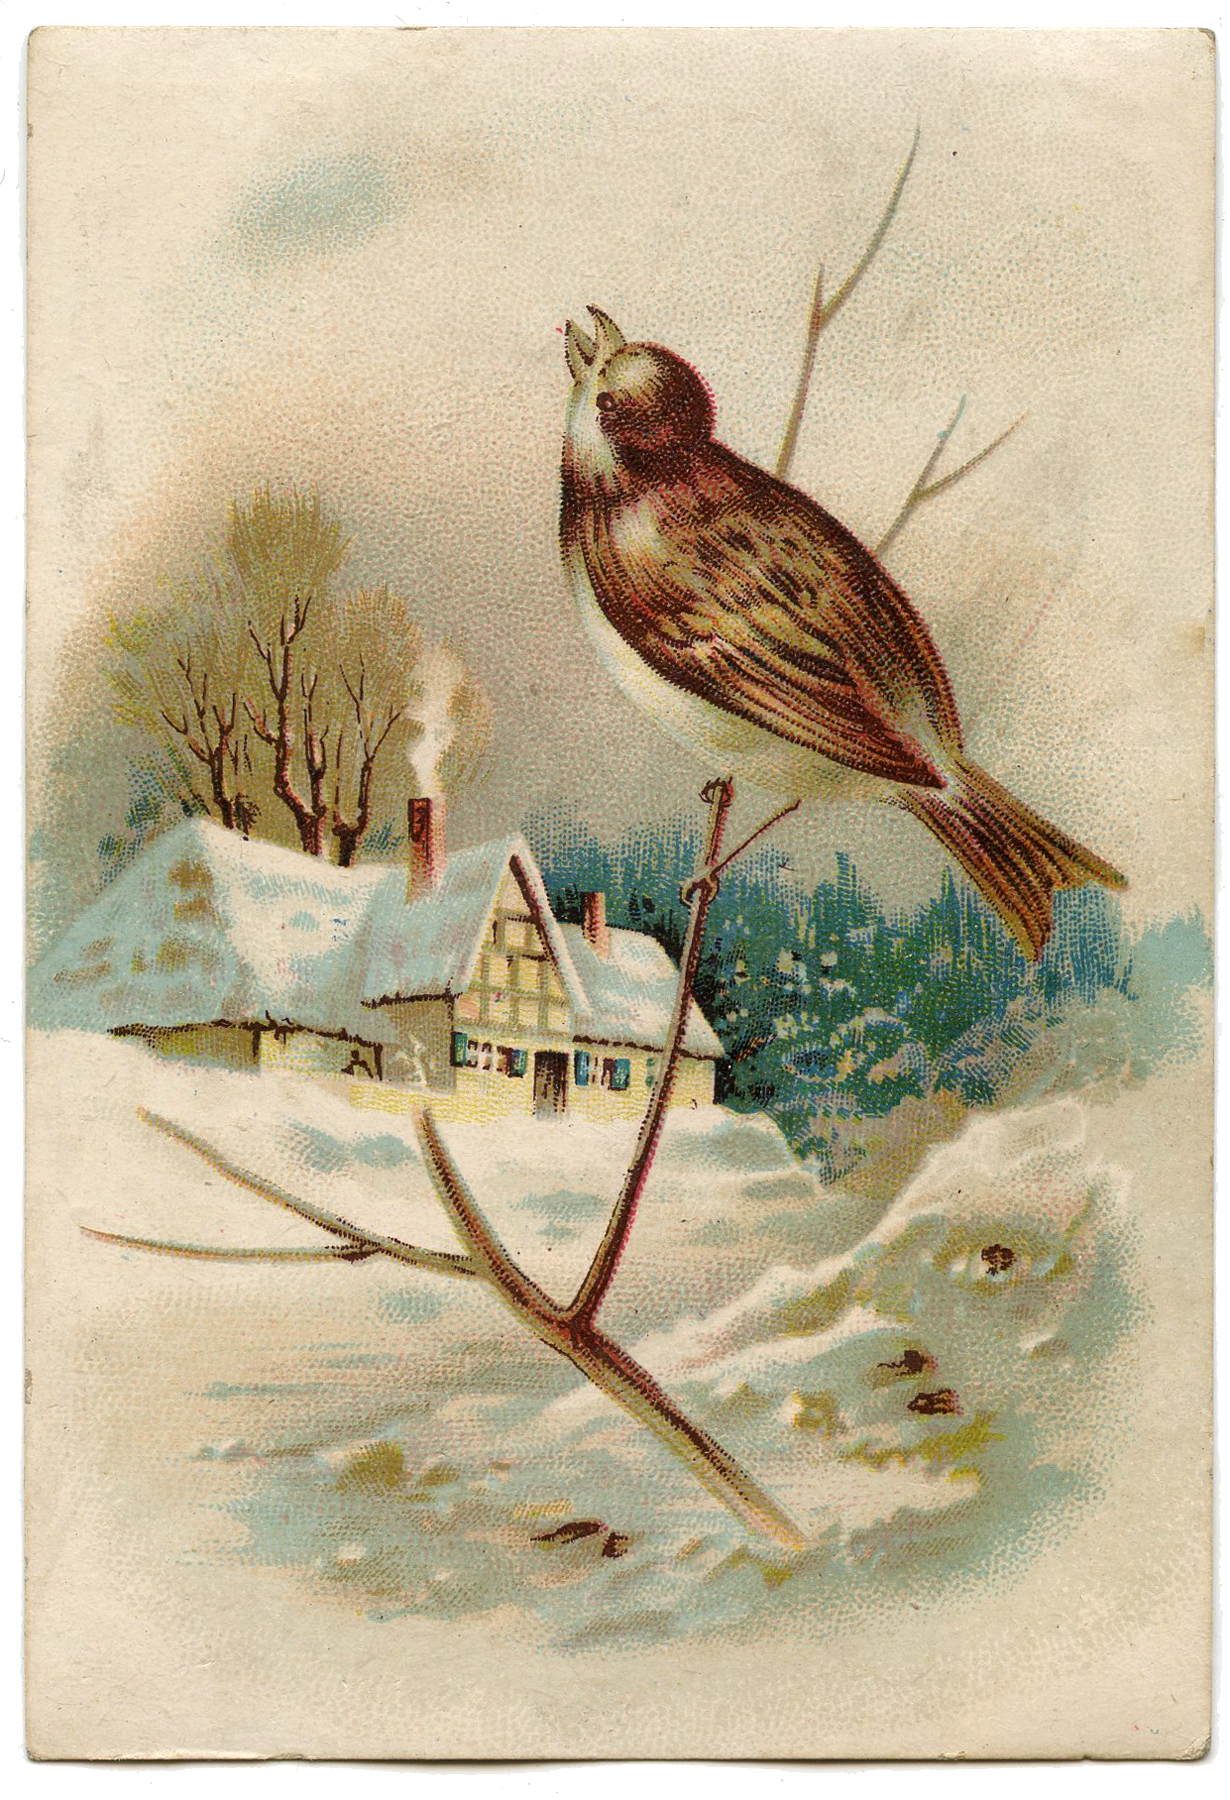 The Graphics Fairy: Winter Cottage Scene Image With Bird!